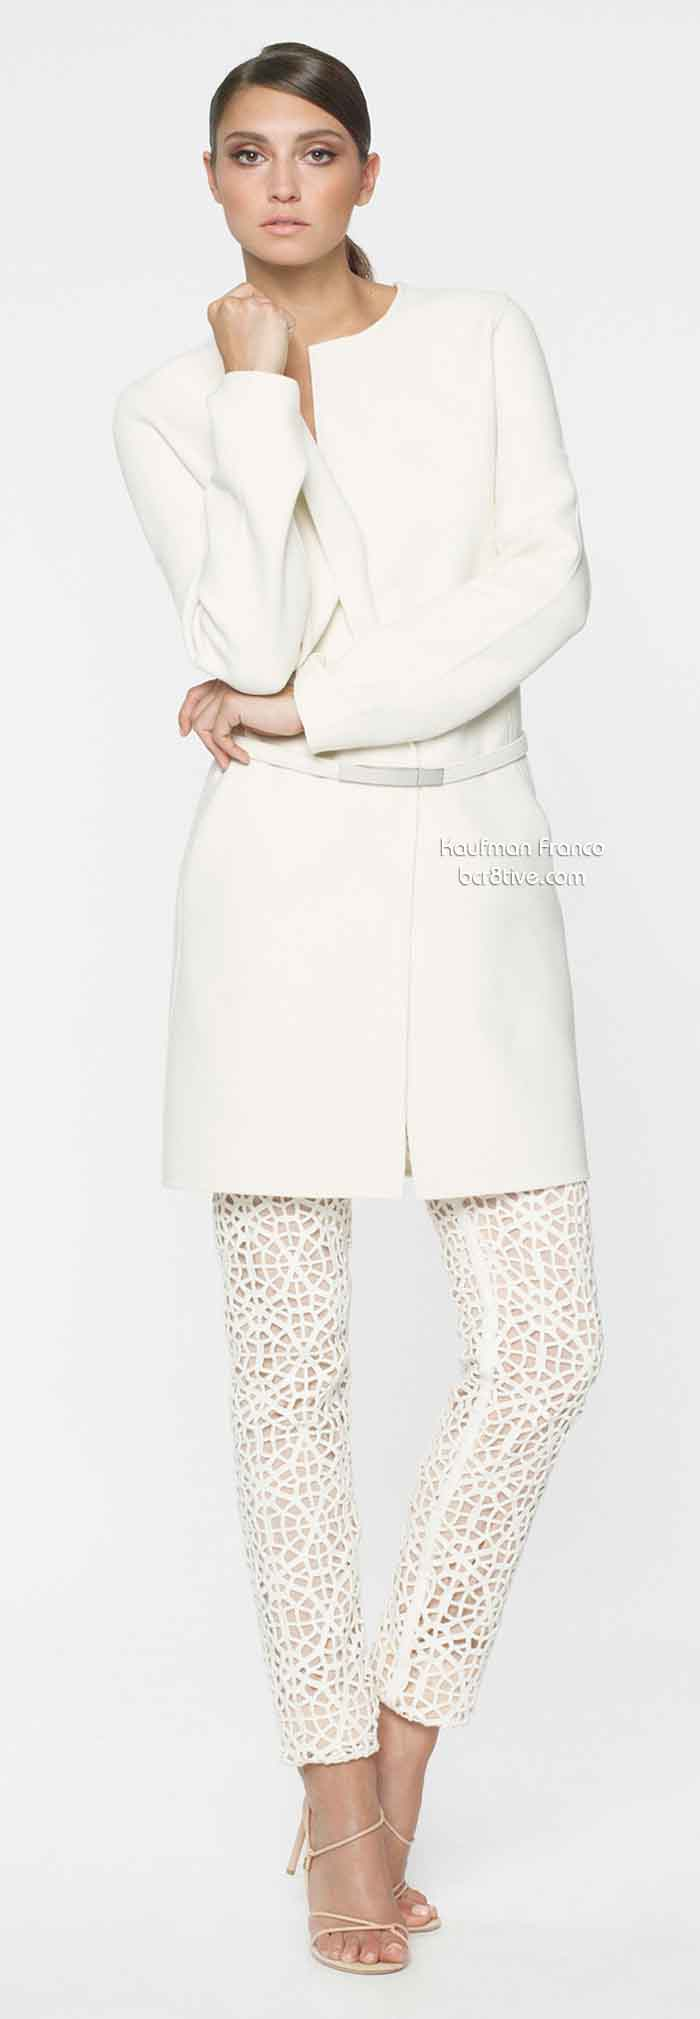 Kaufman Franco Resort 2014